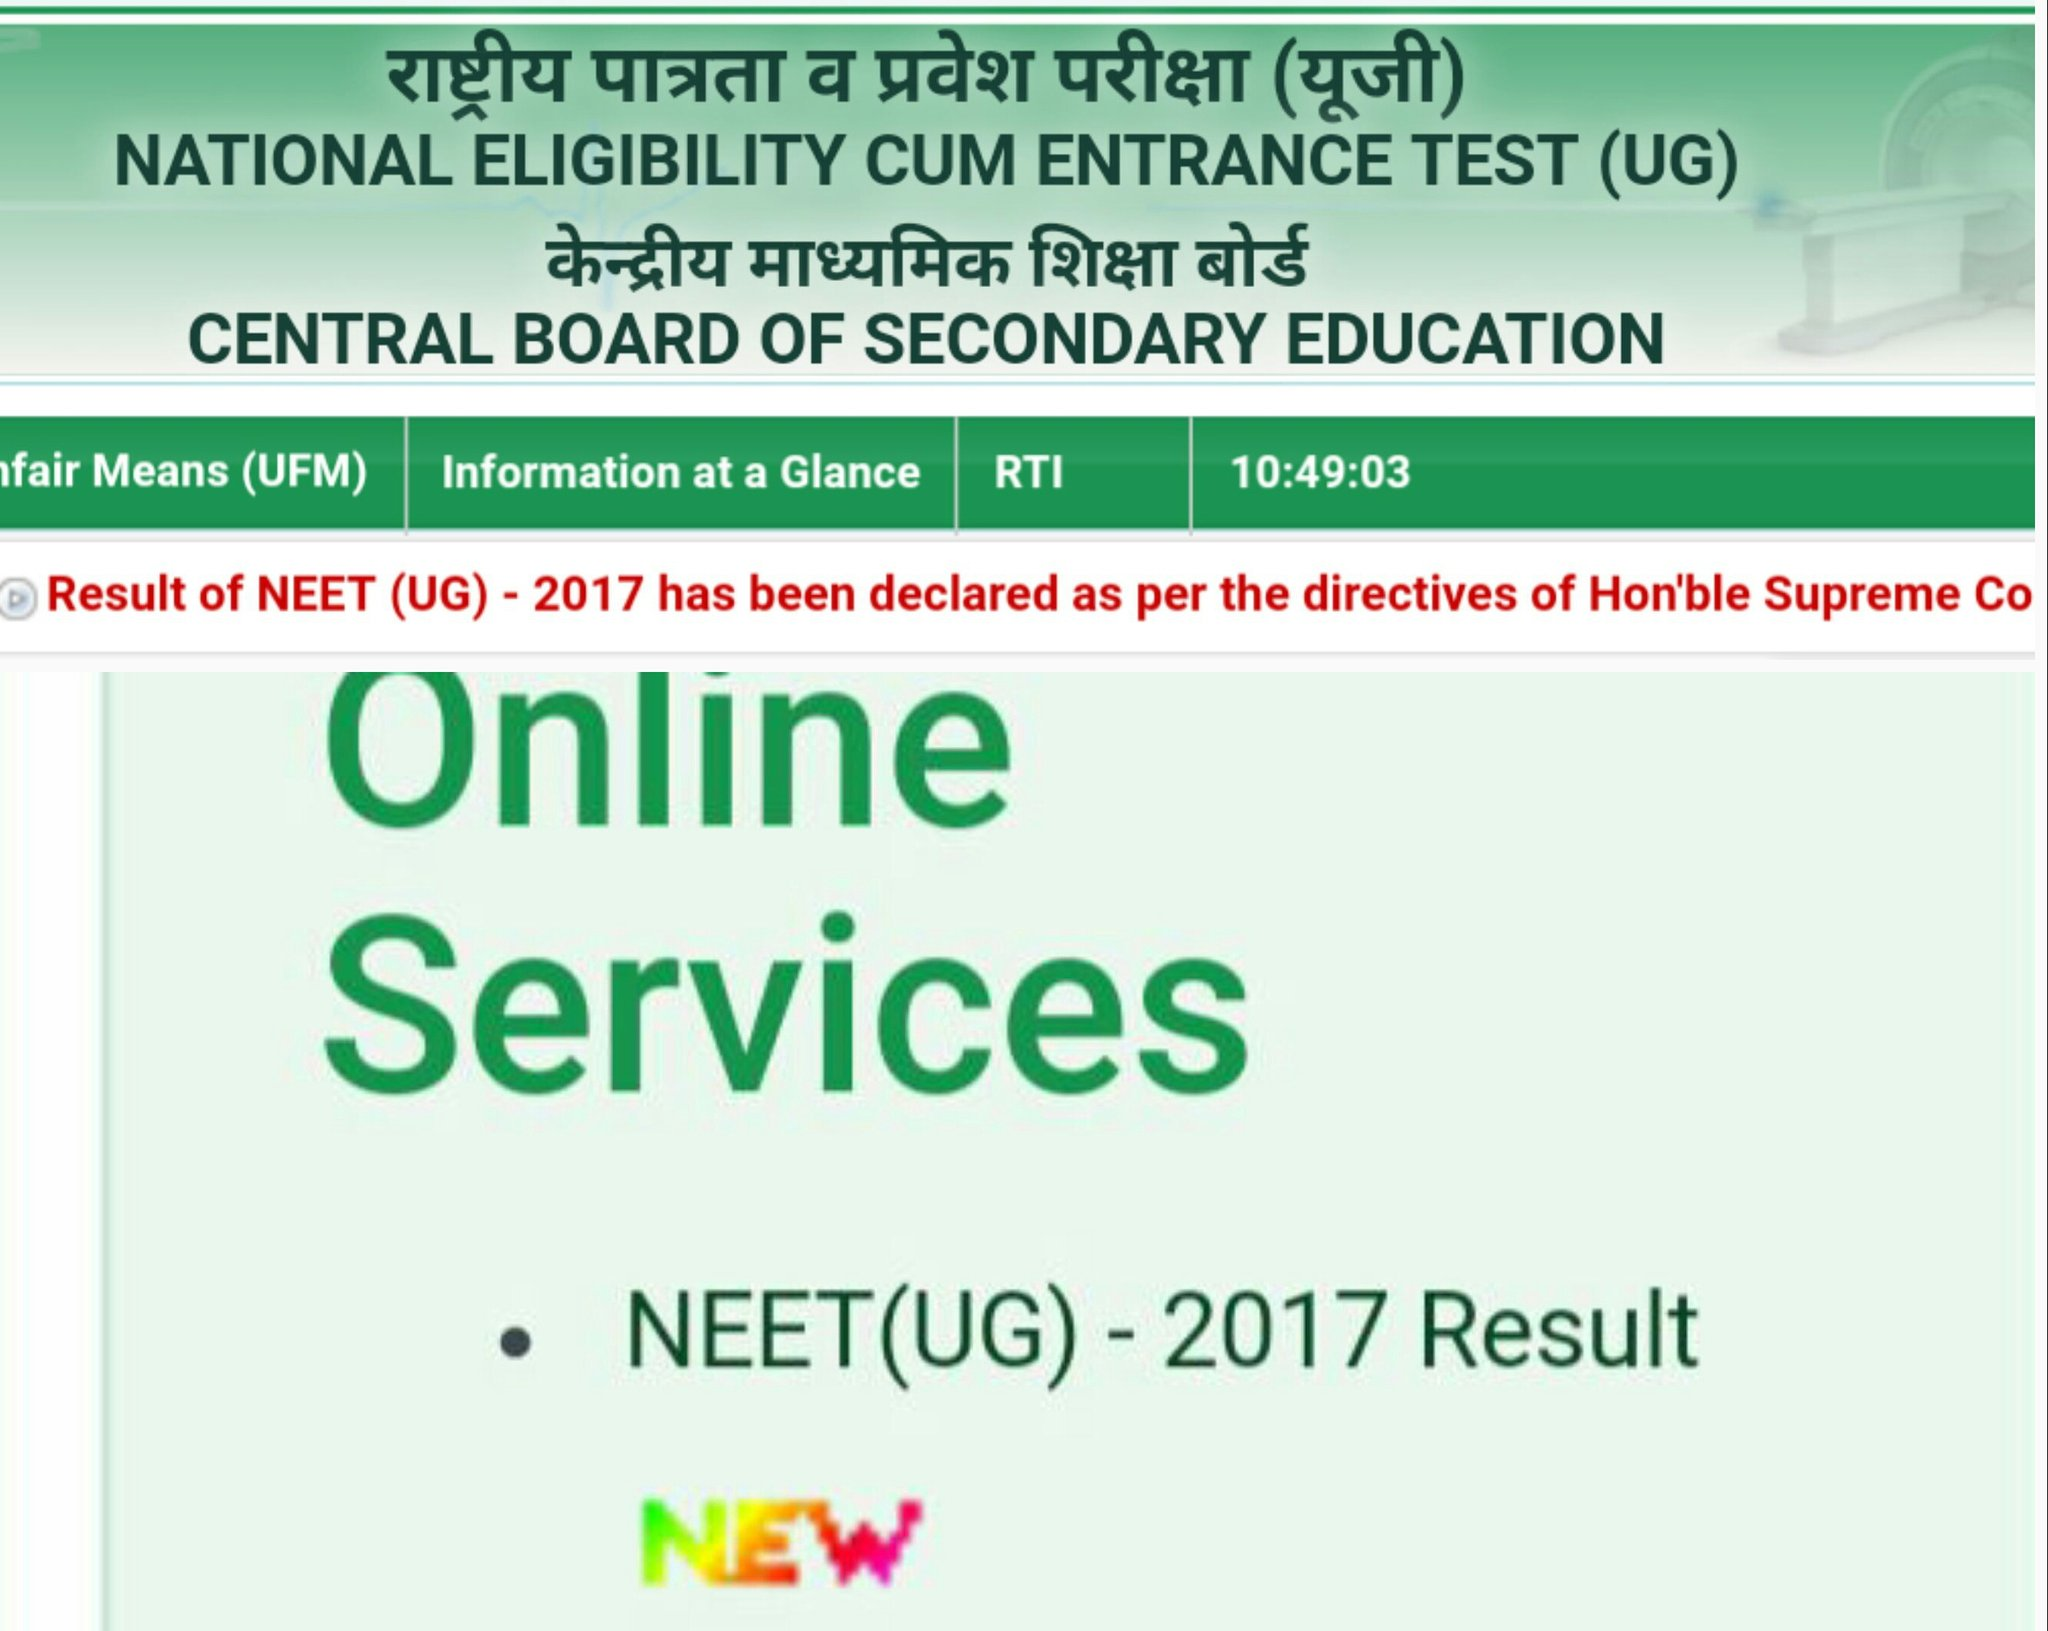 CBSE announces NEET results for admission to MBBS, BDS